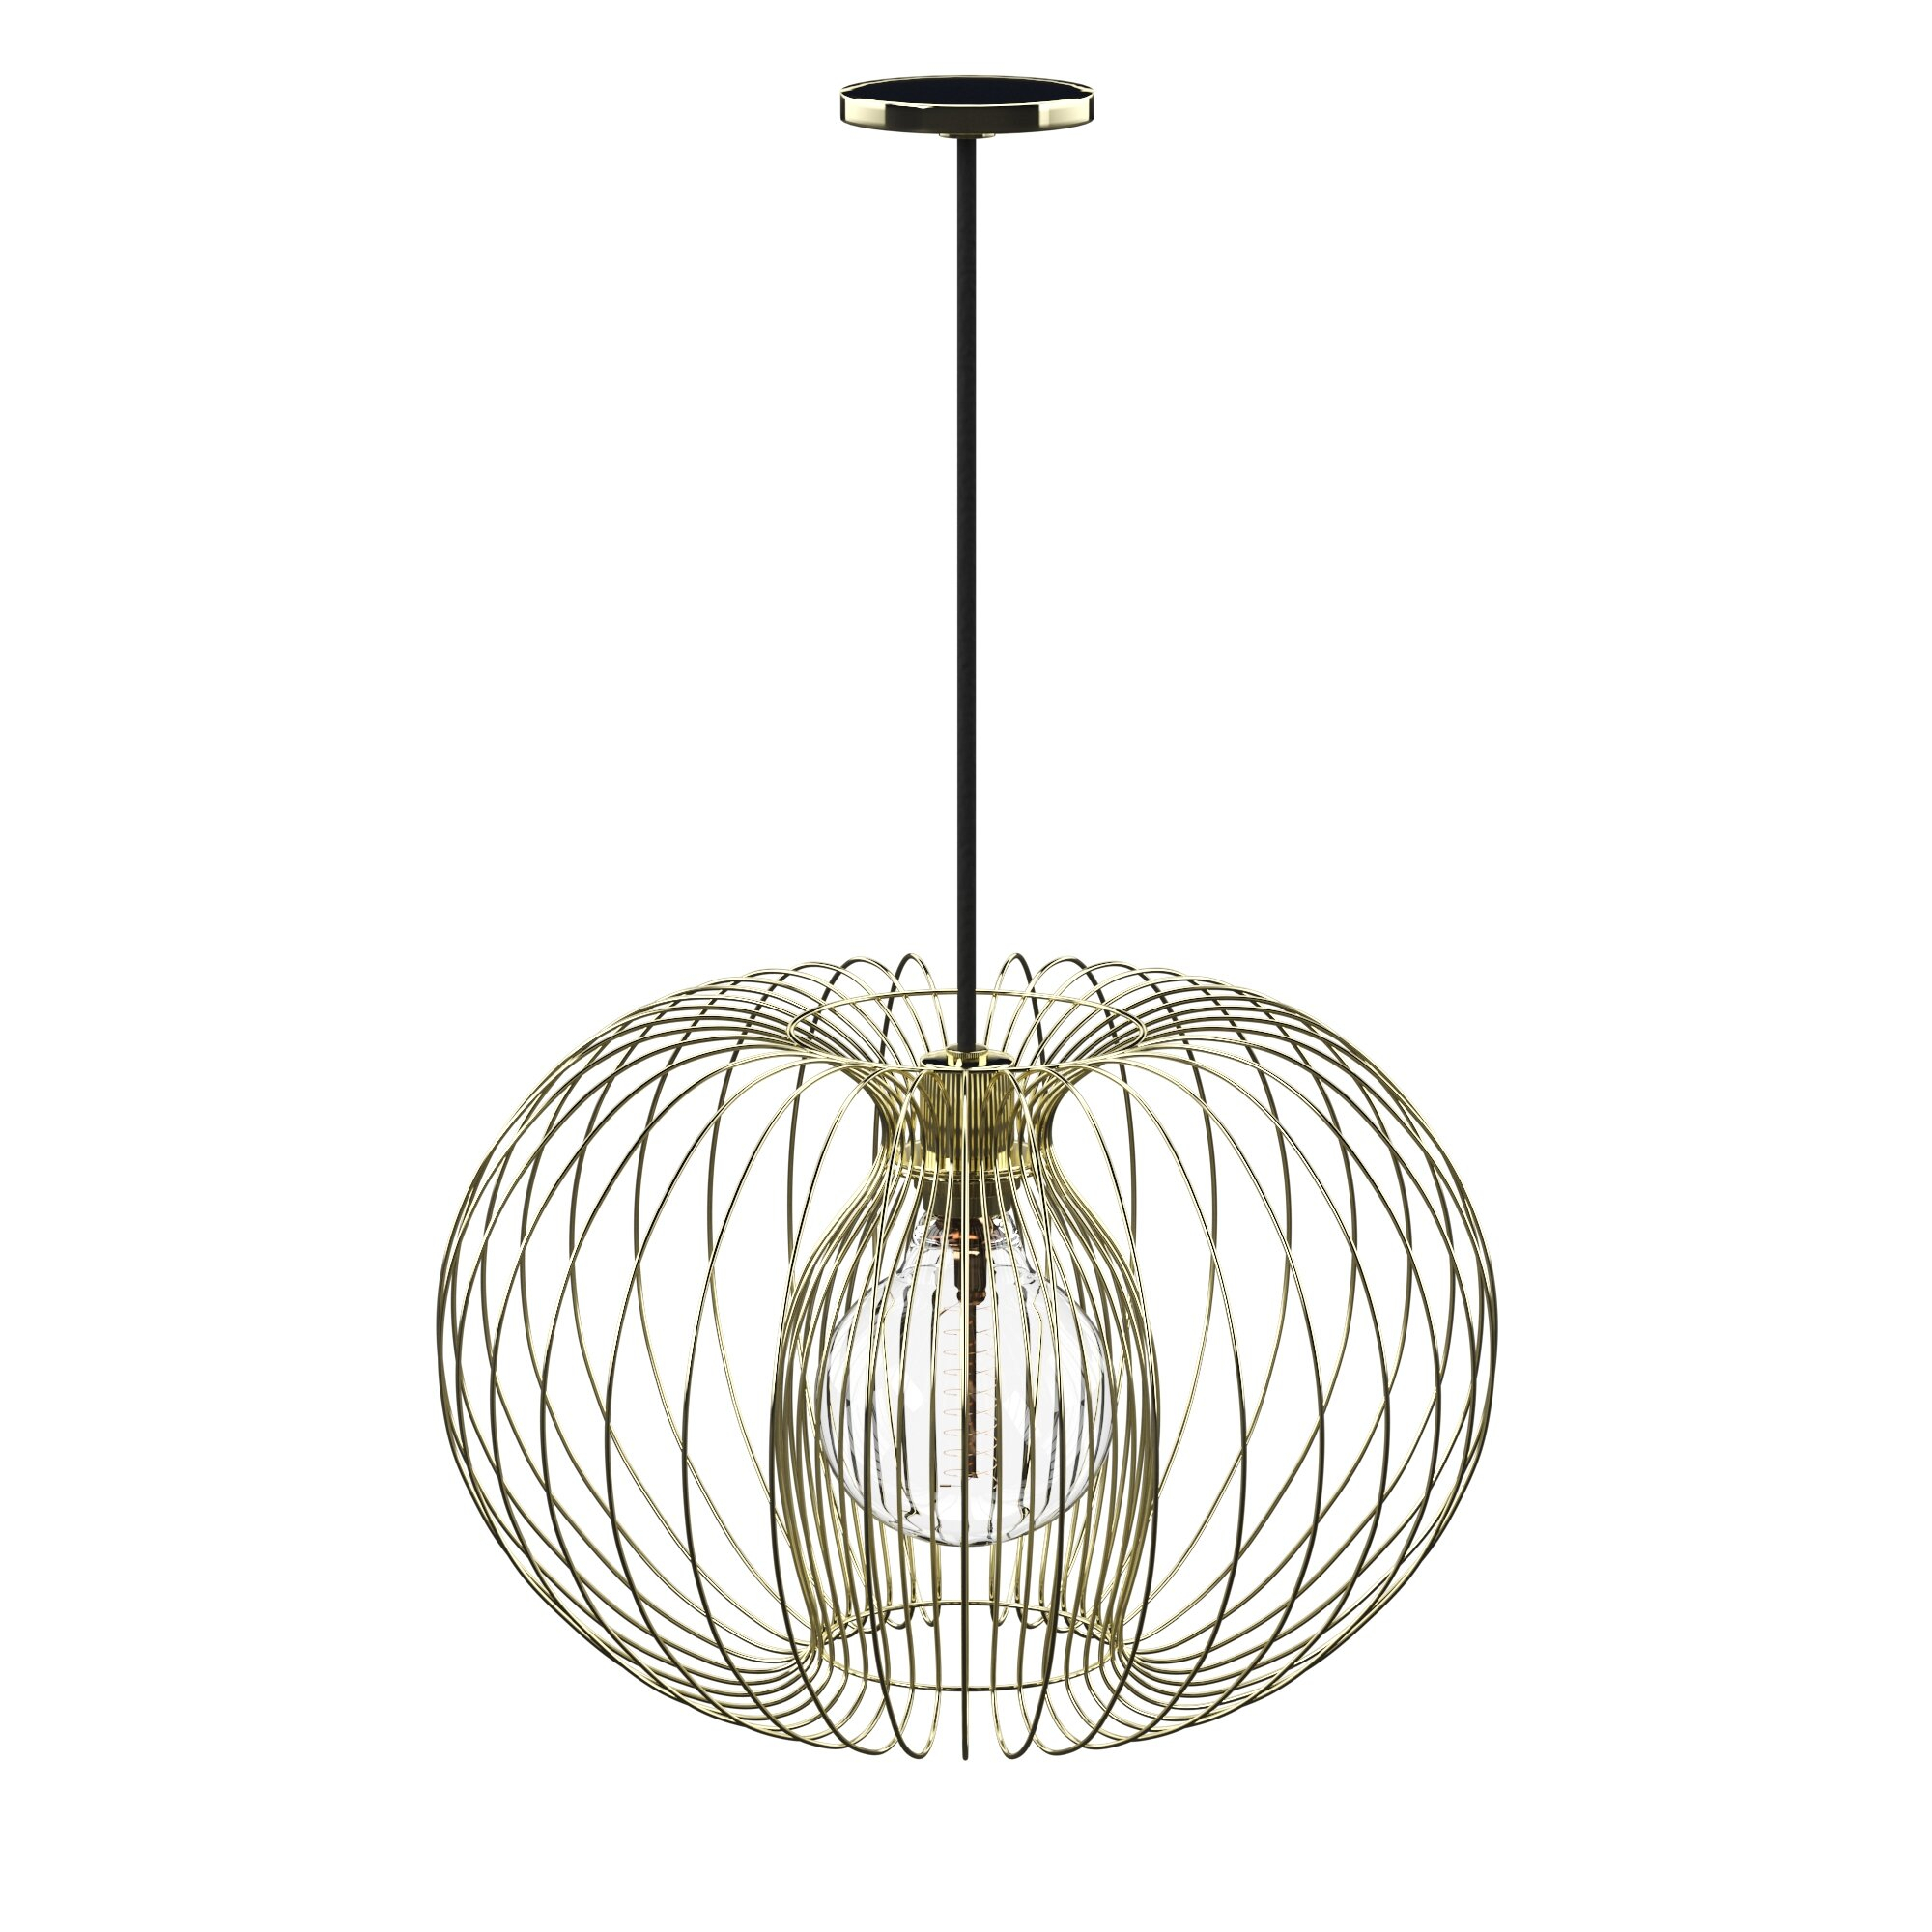 Kass 1 Light Geometric Pendant With Hydetown 1 Light Single Geometric Pendants (View 7 of 30)